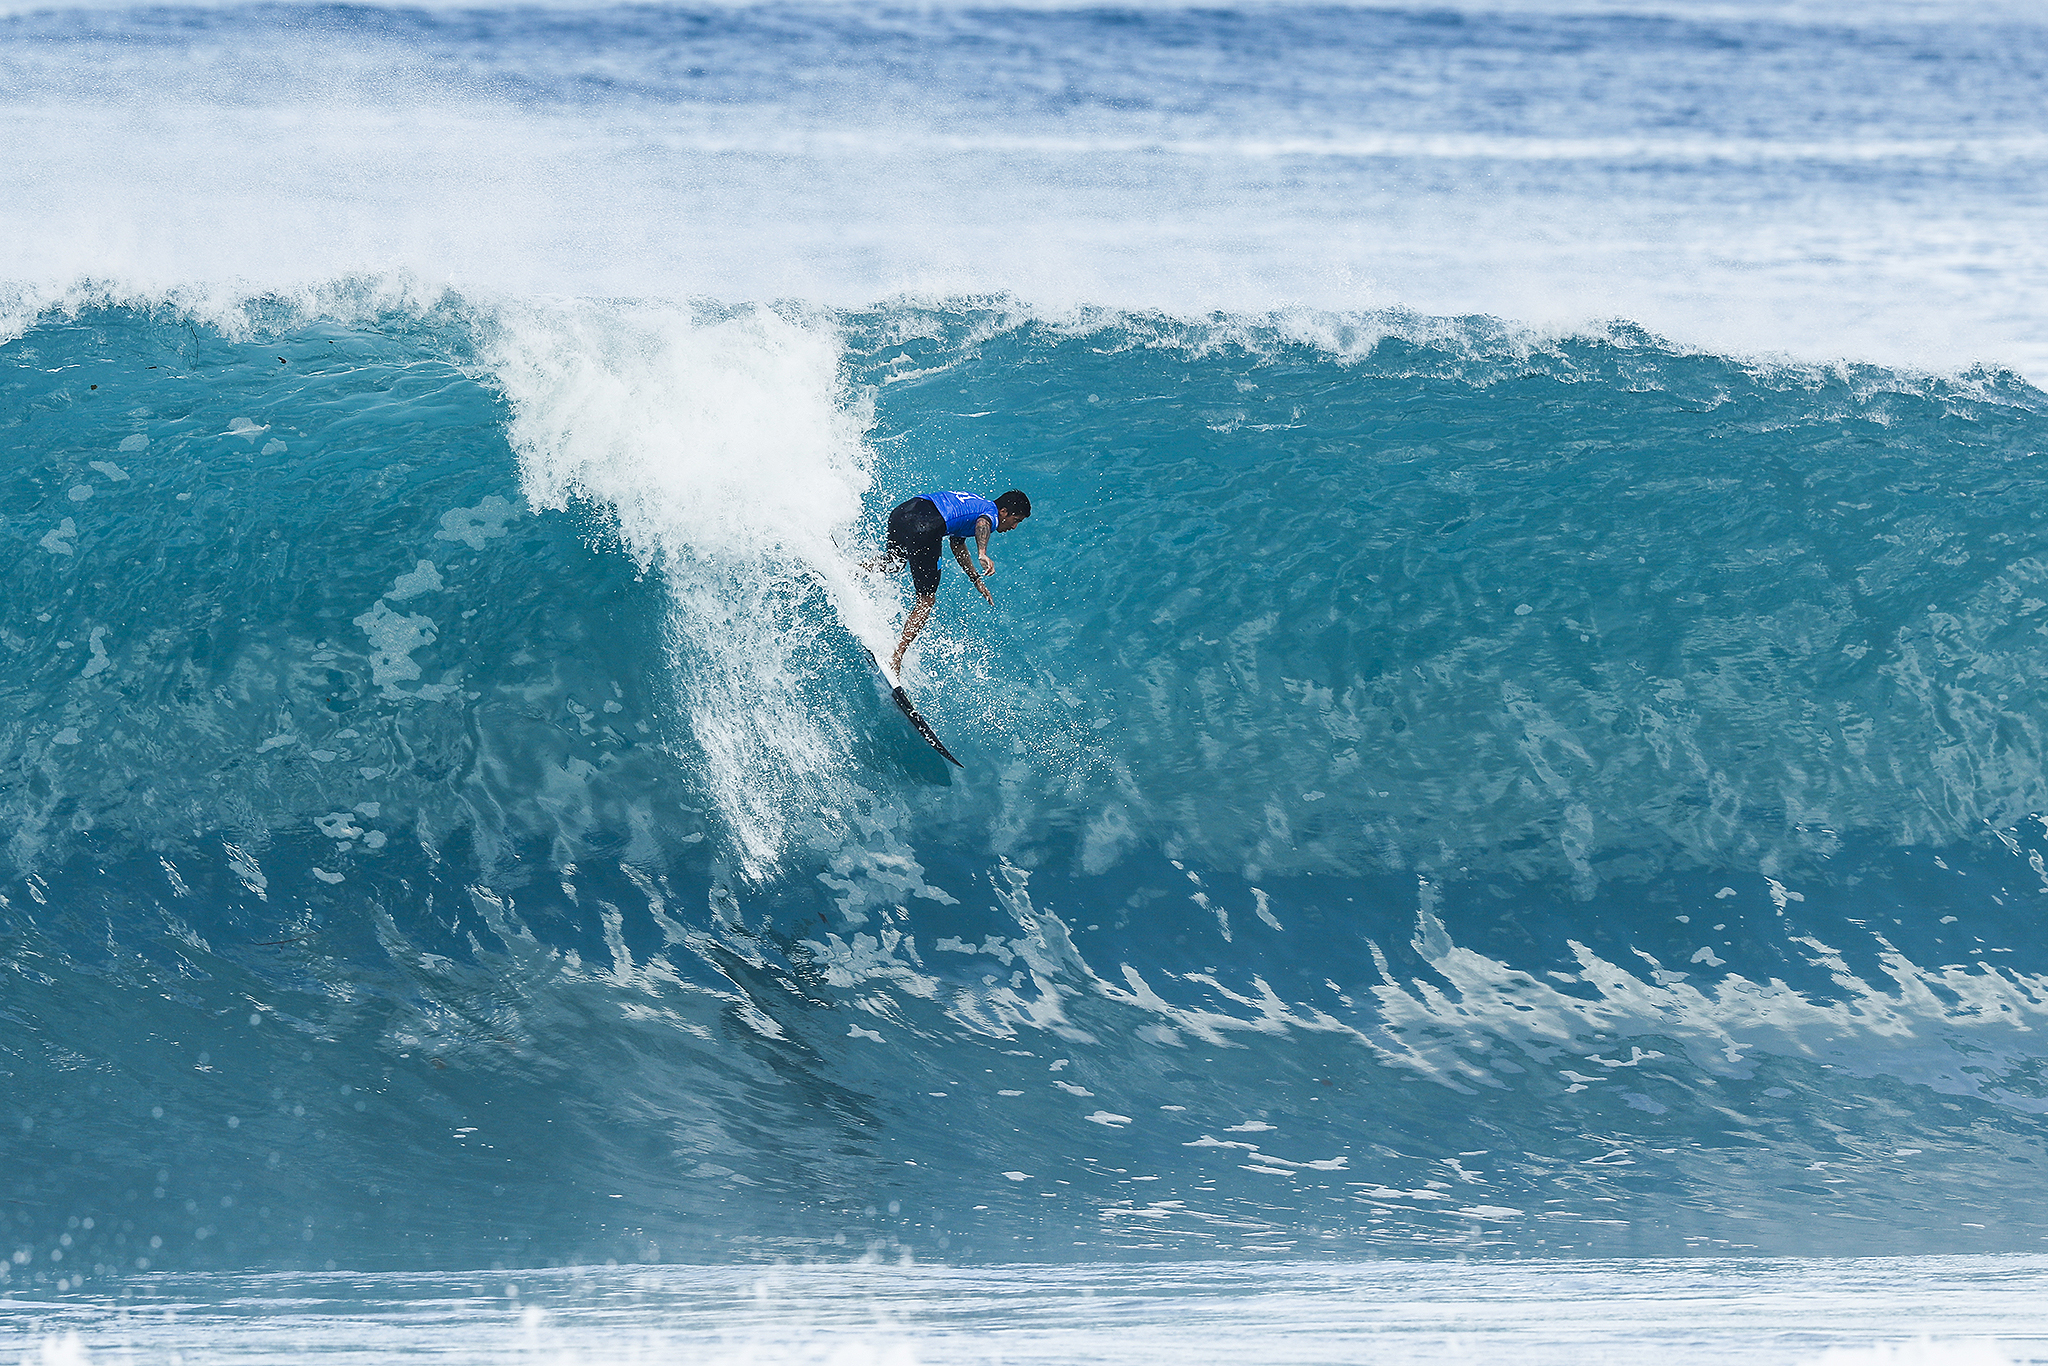 Miguel Pupo of Brazil advances directly to Round Three of the 2017 Billabong Pipe Masters after winning Heat 5 of Round One at Pipe, Oahu, Hawaii, USA. Pupo caused an upset in Round One when he defeated World No.2 Gabriel Medina (BRA).